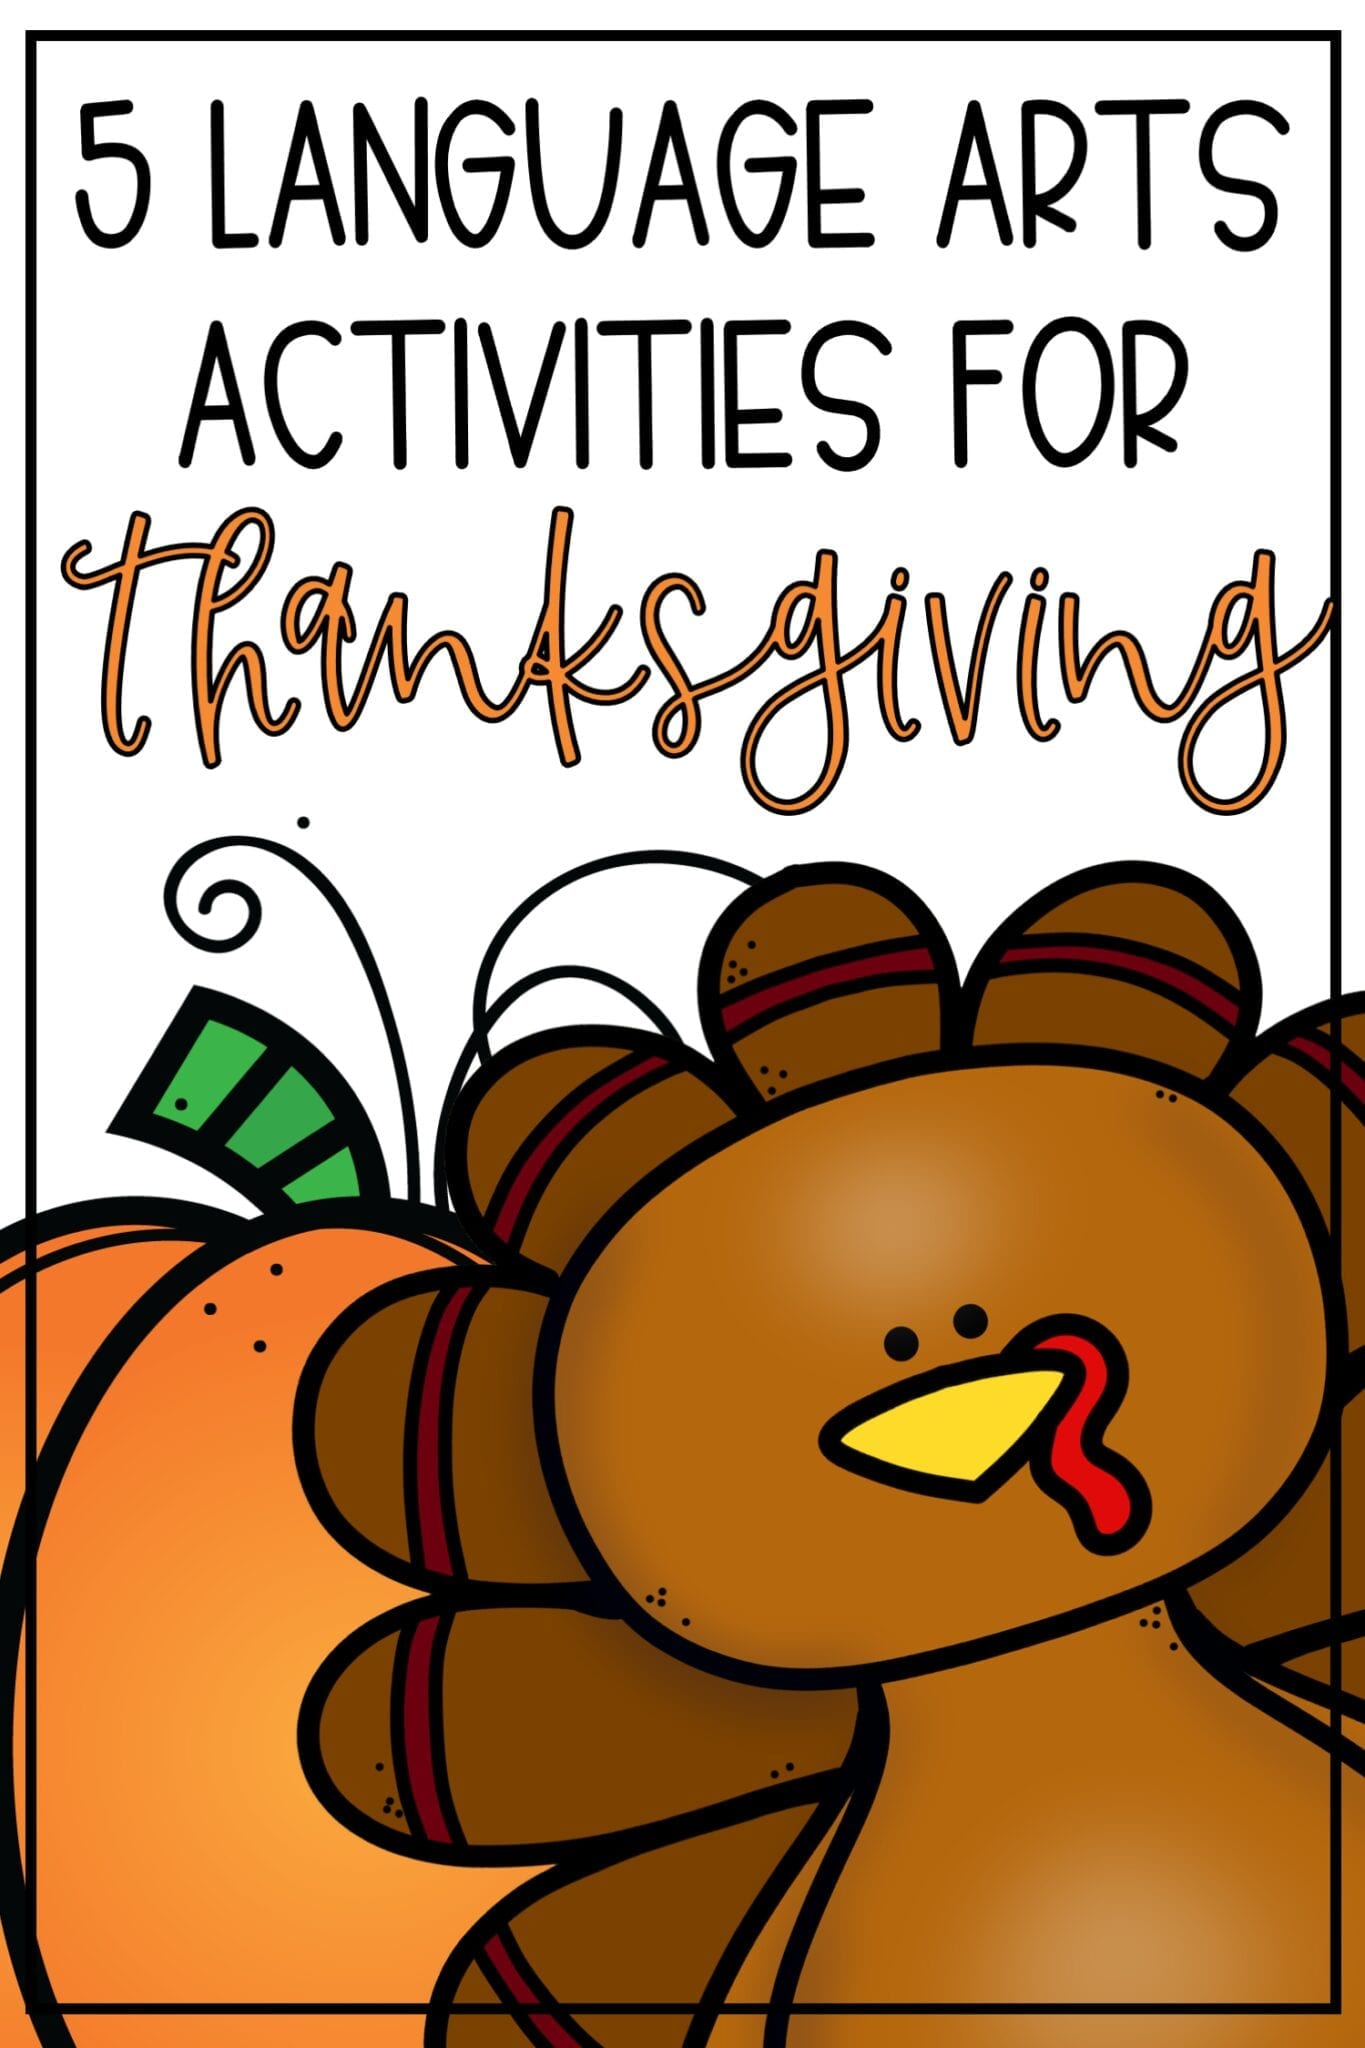 Language Arts Activities for Thanksgiving